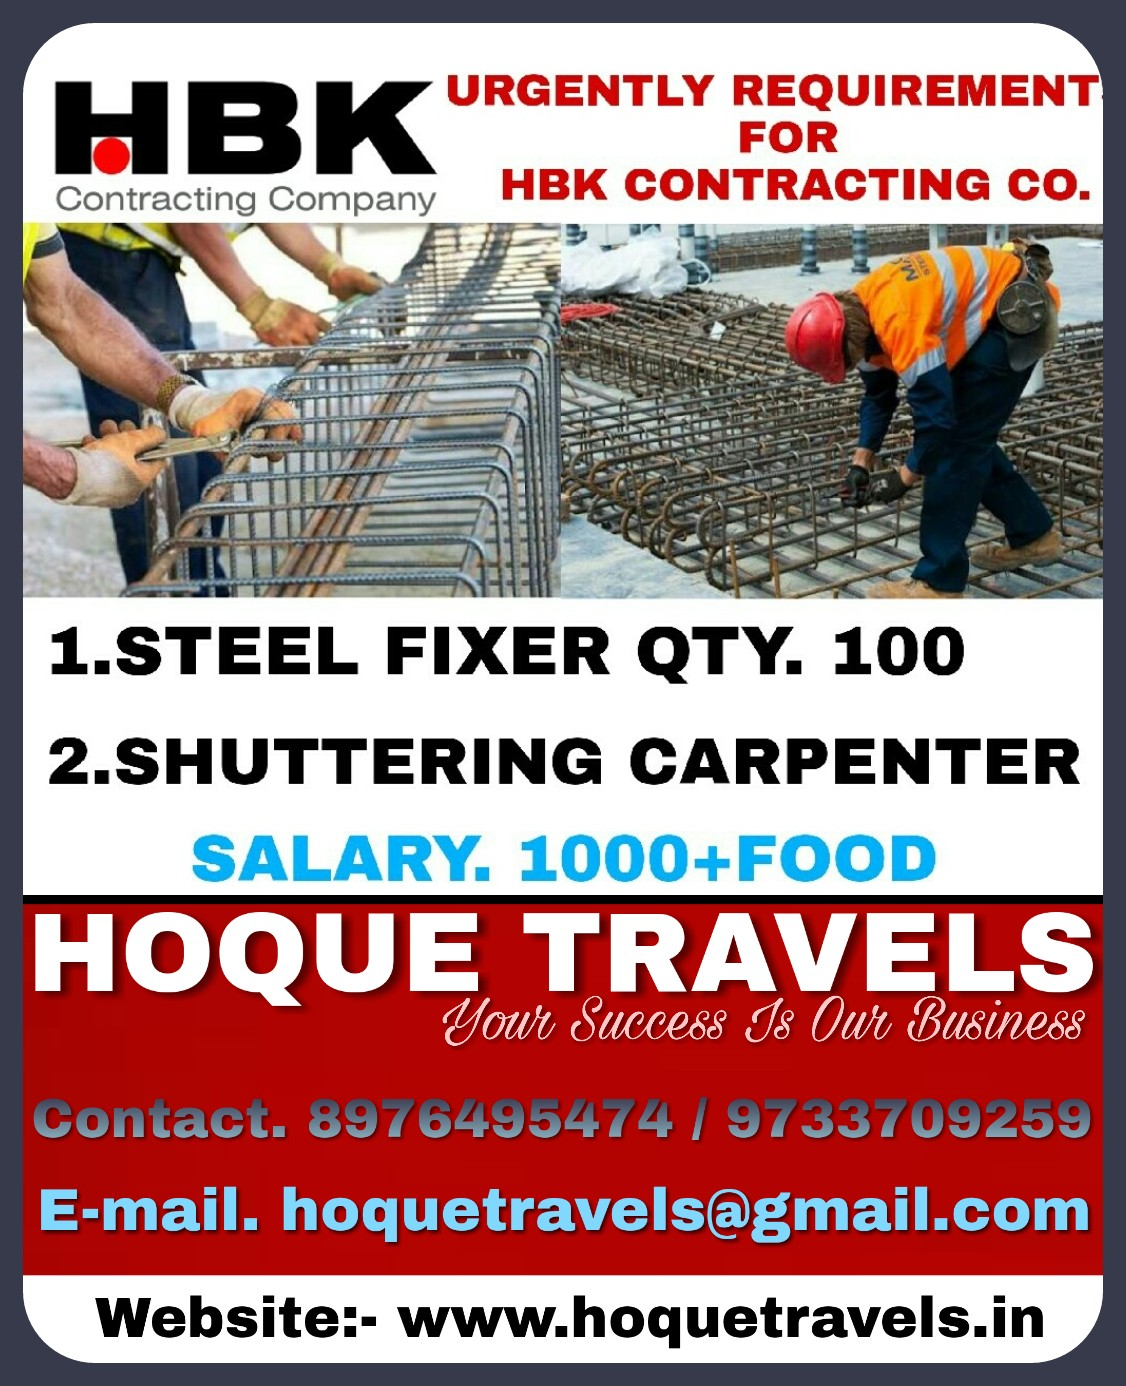 URGENTLY REQUIREMENTS FOR HBK CONTRACTING COMPANY IN QATAR